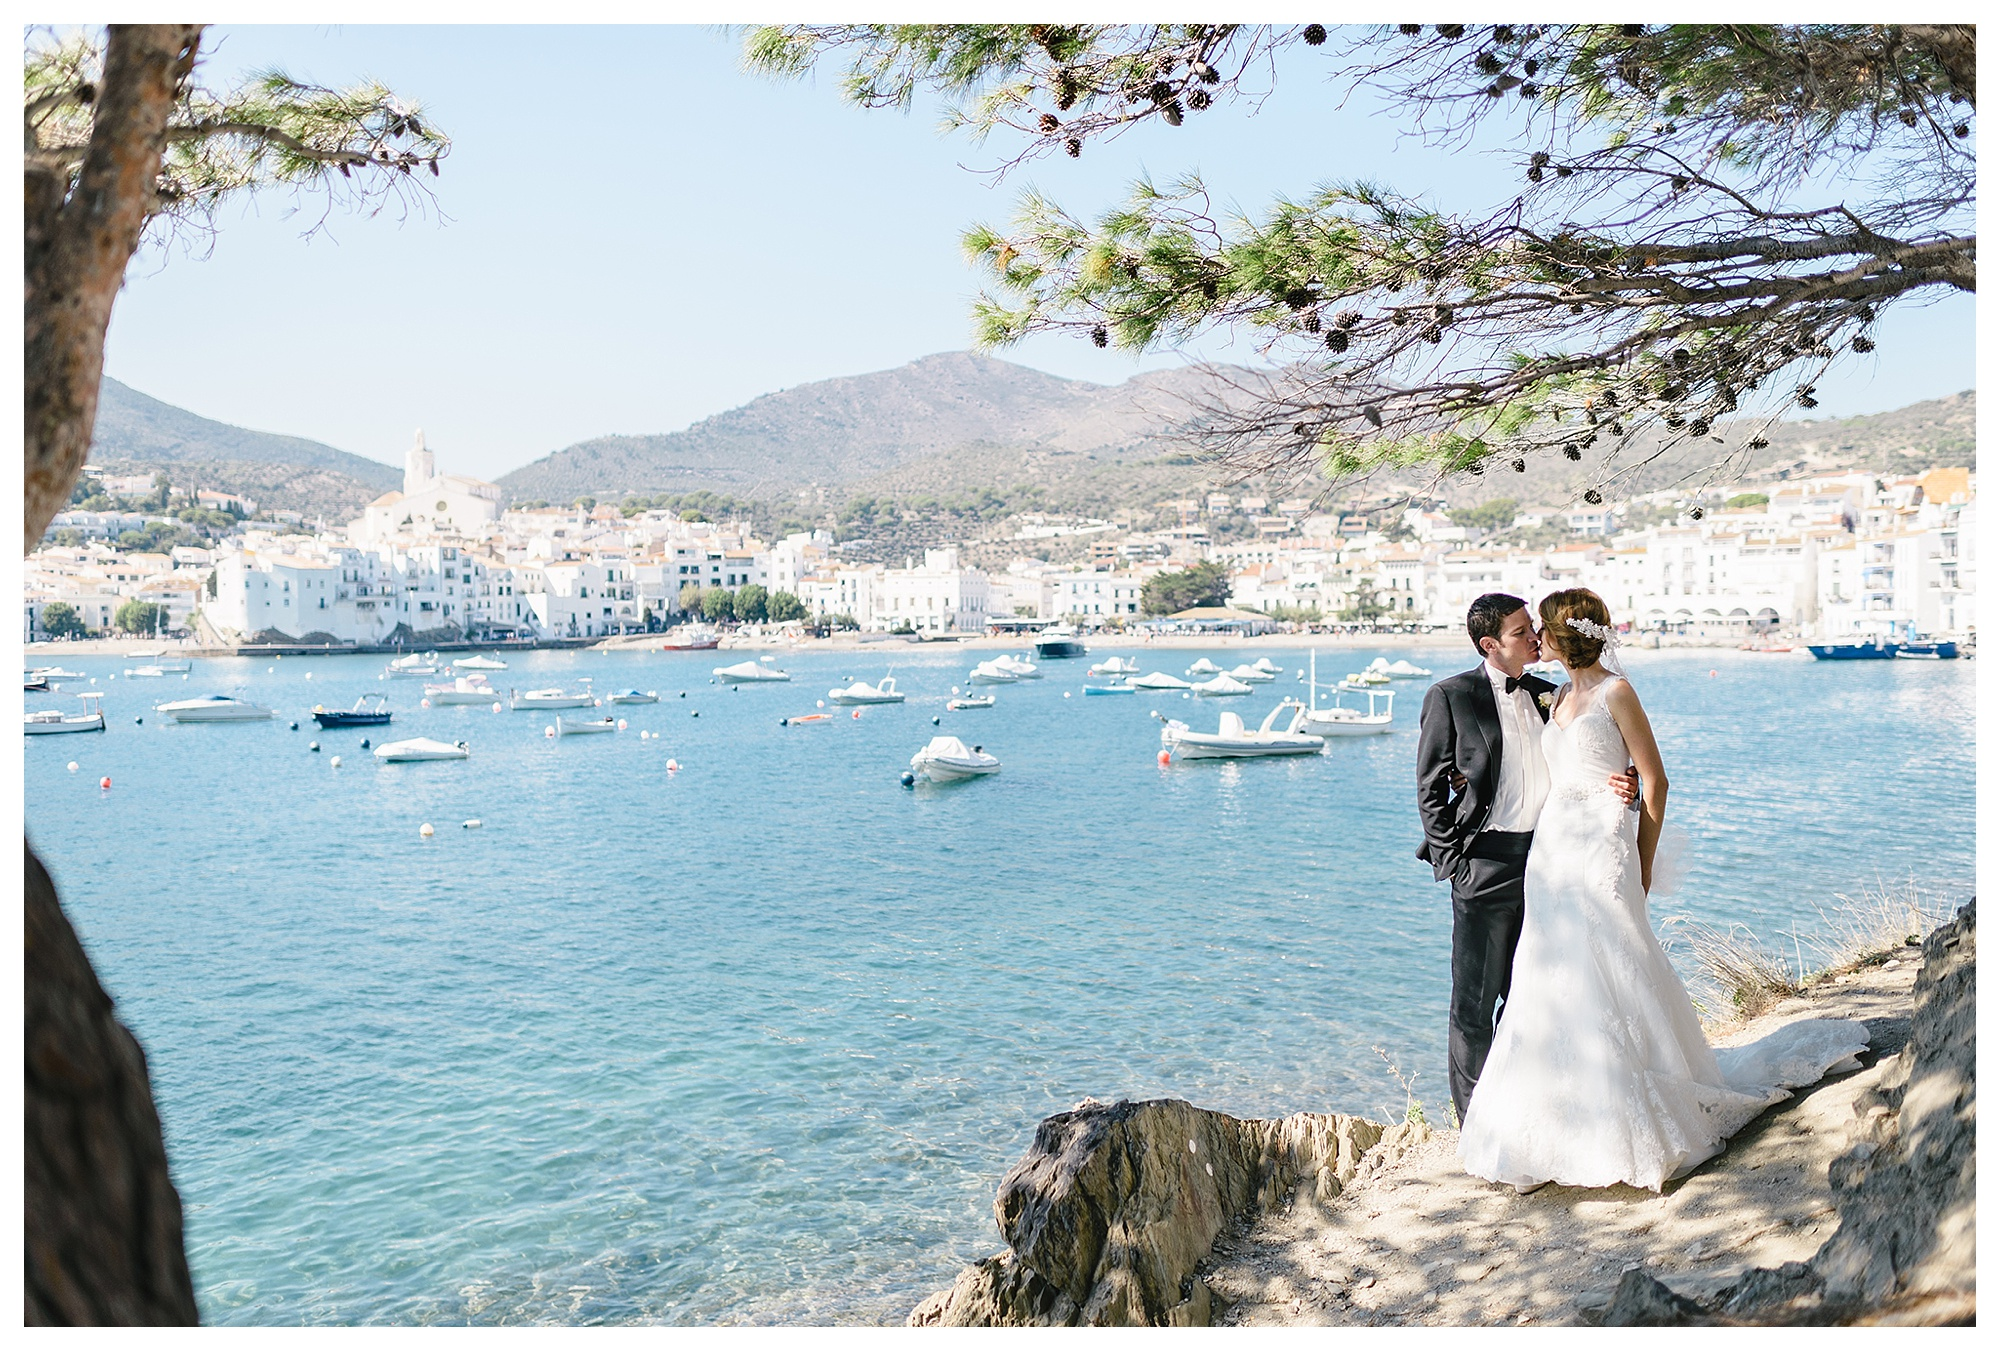 Fotograf Konstanz - Wedding Spain Cadaques Elmar Feuerbacher Photography 1 - Als Destination Wedding Fotograf in Cadaqués, Spanien  - 1 -